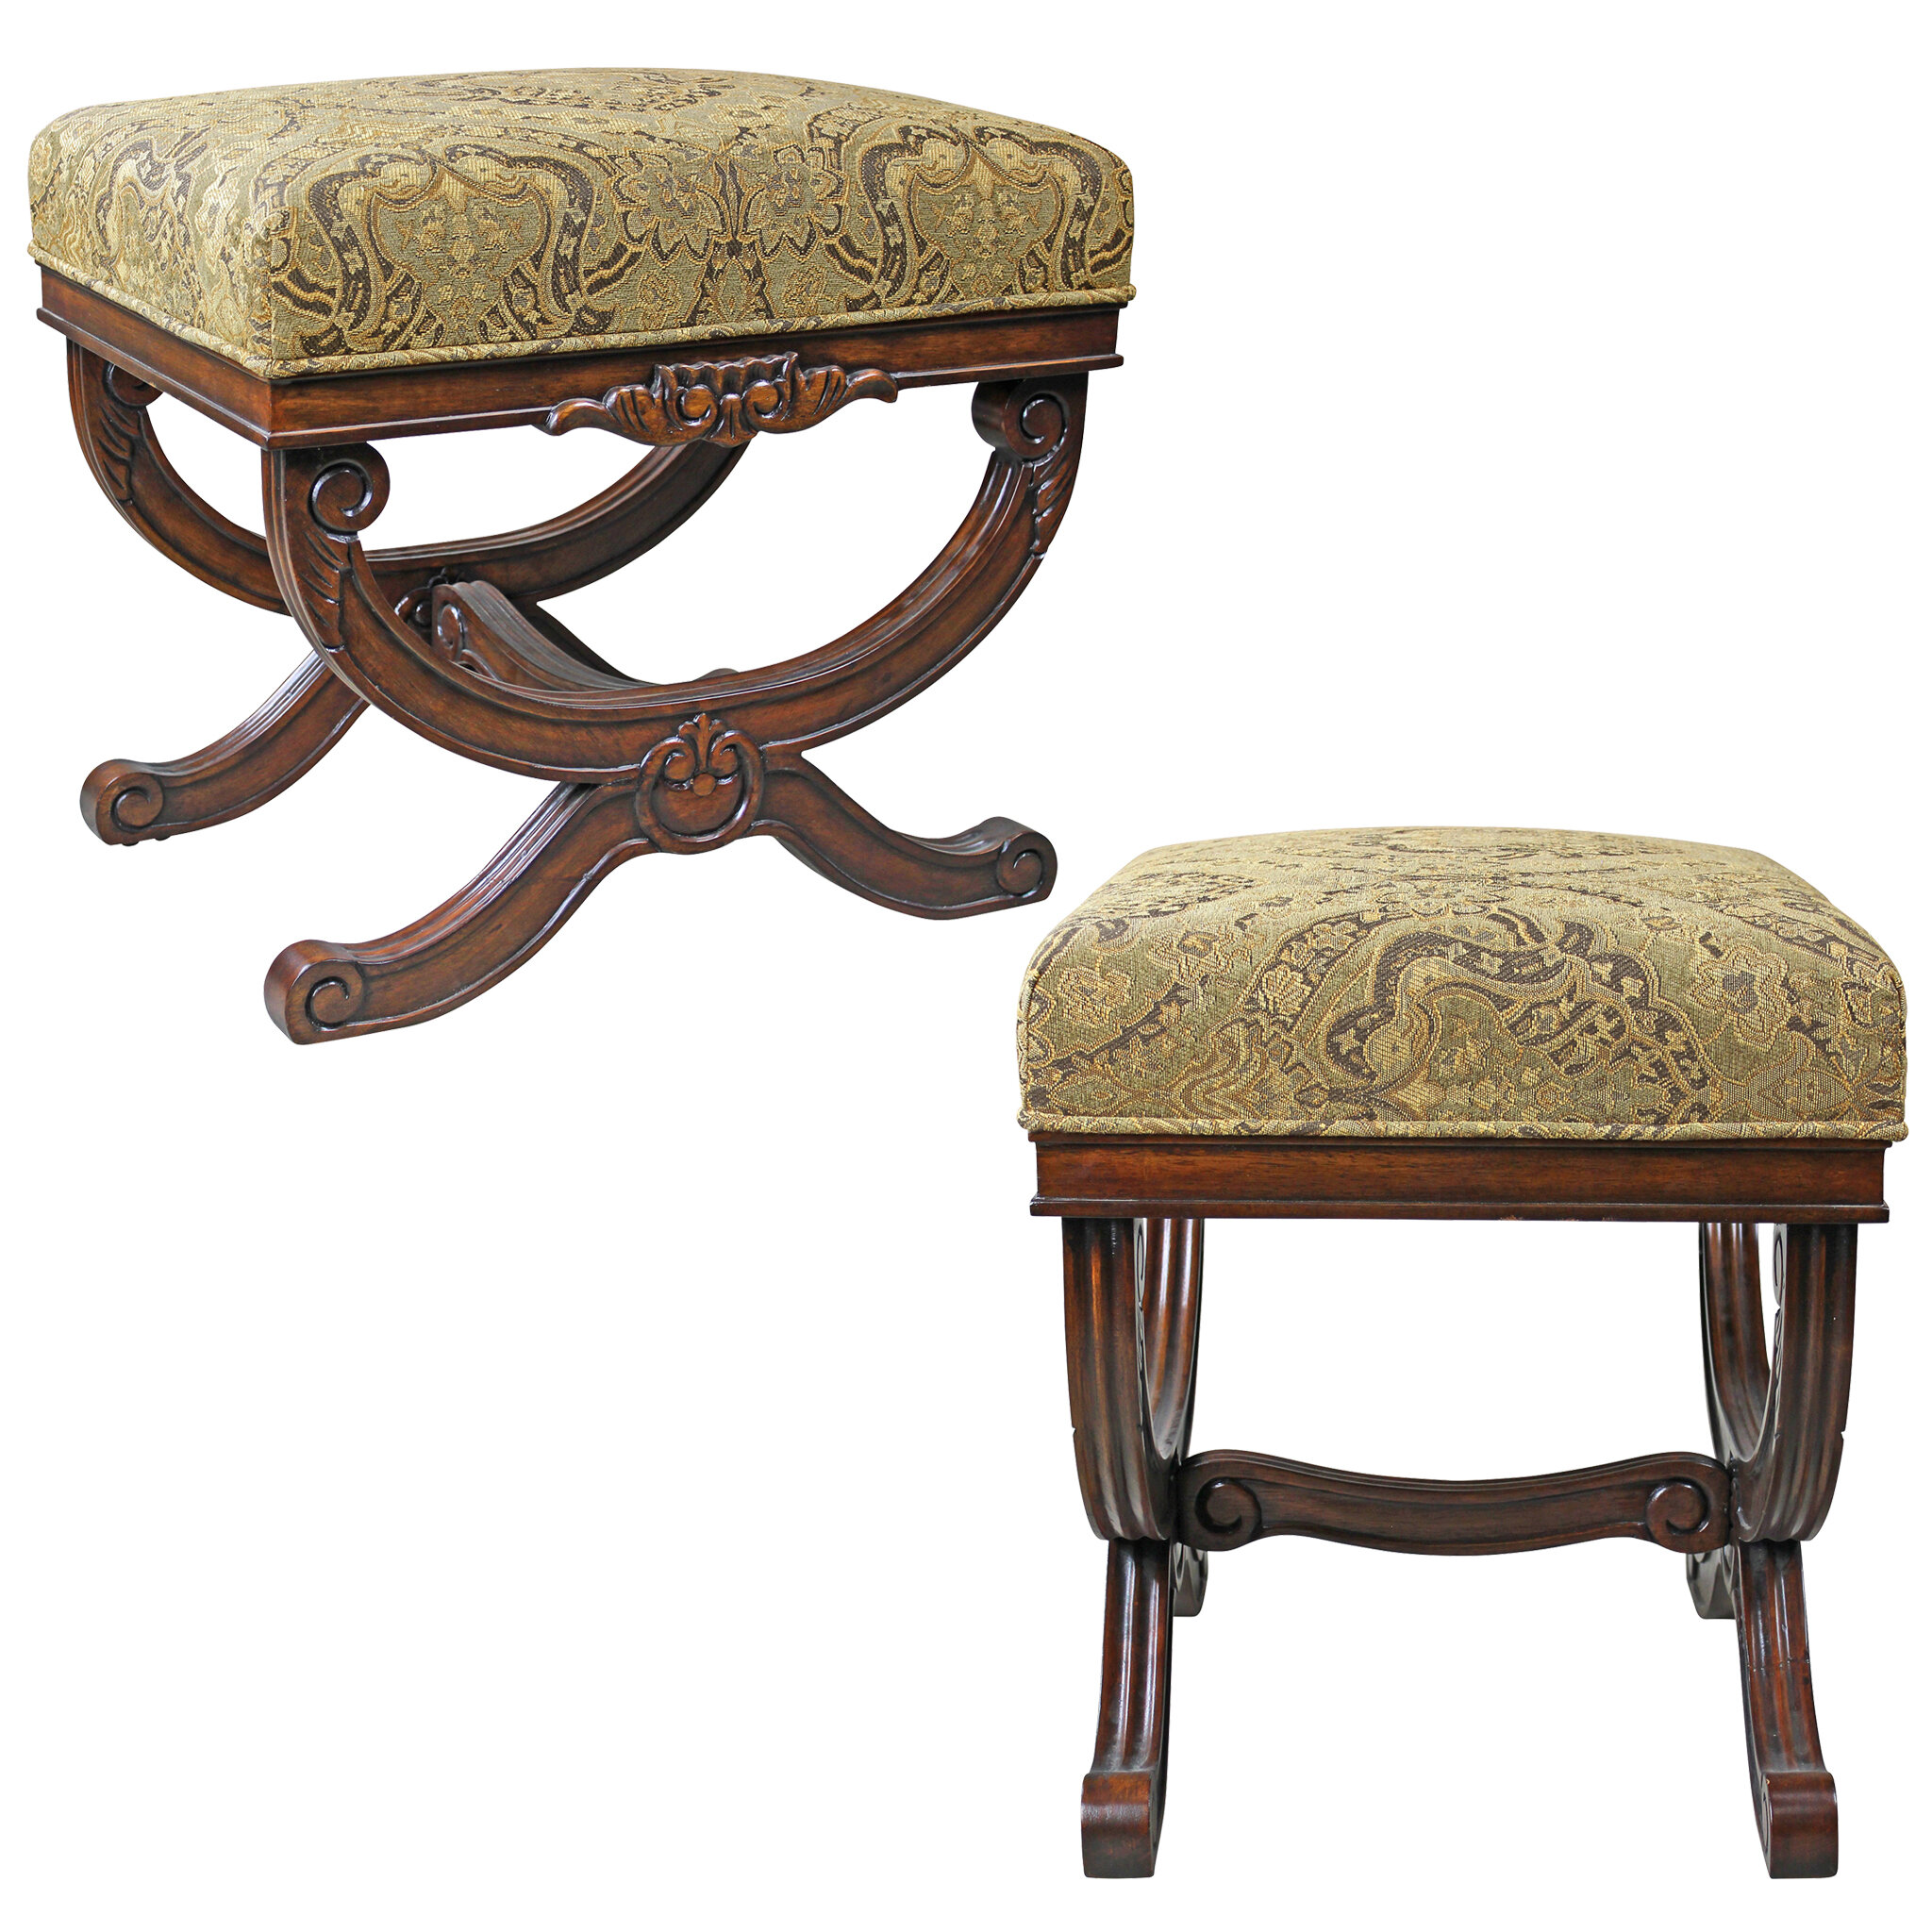 Enjoyable Classical Curule Ottoman Vanity Stool Andrewgaddart Wooden Chair Designs For Living Room Andrewgaddartcom